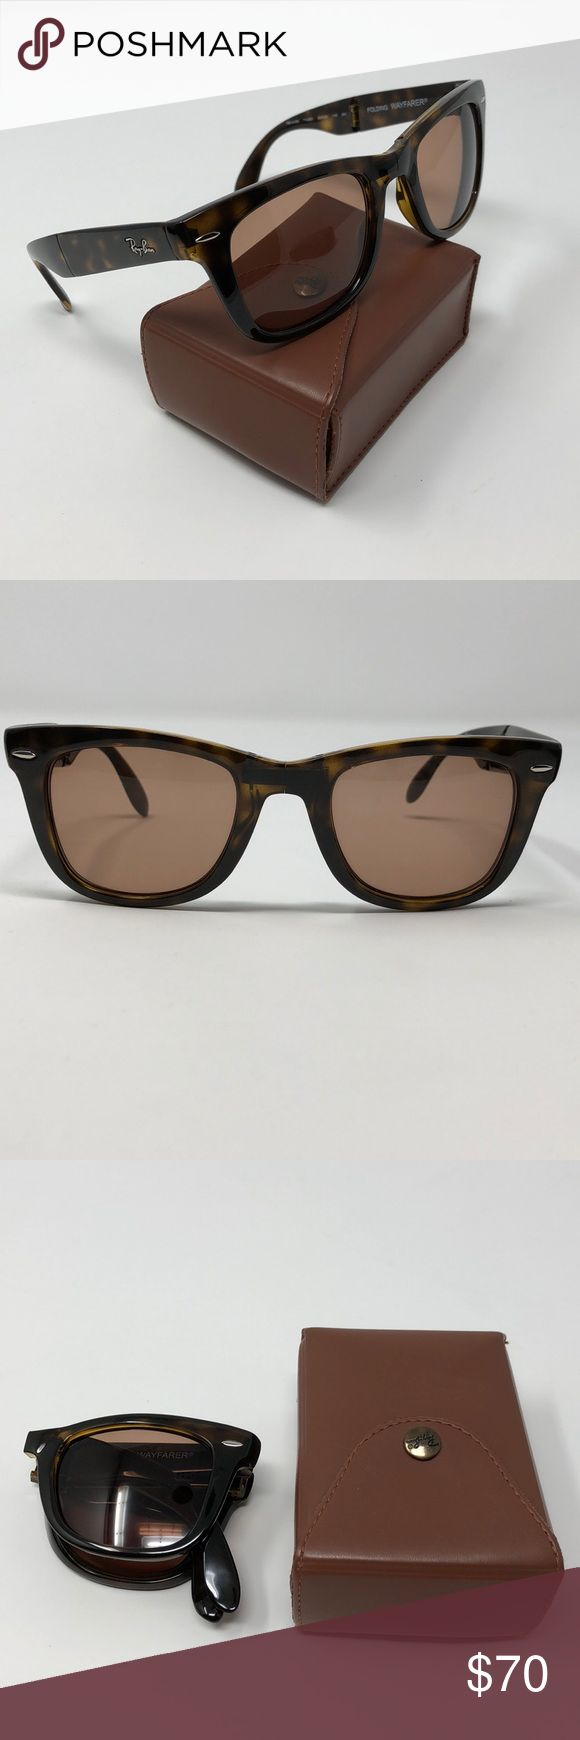 RB 4105 710/51 50/22/140 2N **FRAME ONLY** Ray-Ban Folding Wayfarer sunglass FRAMES ONLY have all the same iconic lines as the original, but has been constructed into a compact, folding style. These sunglasses are practical, portable, and always in style. *****These sunglasses currently have a prescription RX lens inside of them, so replacement lens is needed.***** Frames have a few light scratches, not really noticeable. Includes frames, protective case & cleaning cloth. Ray-Ban Accessories…